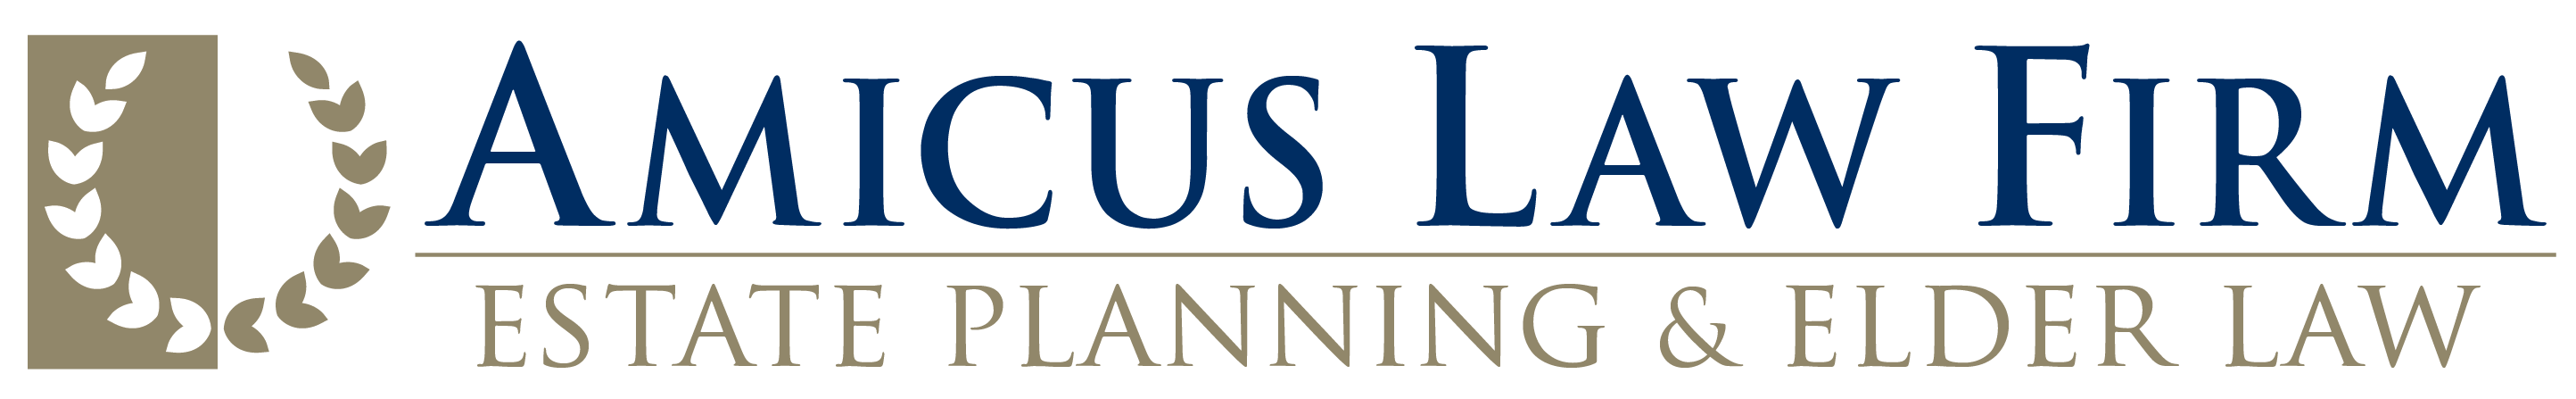 Amicus Law Firm Comprises an Experienced Estate Planning Attorney in Centerville, UT, Representing Clients in Estate Planning Cases